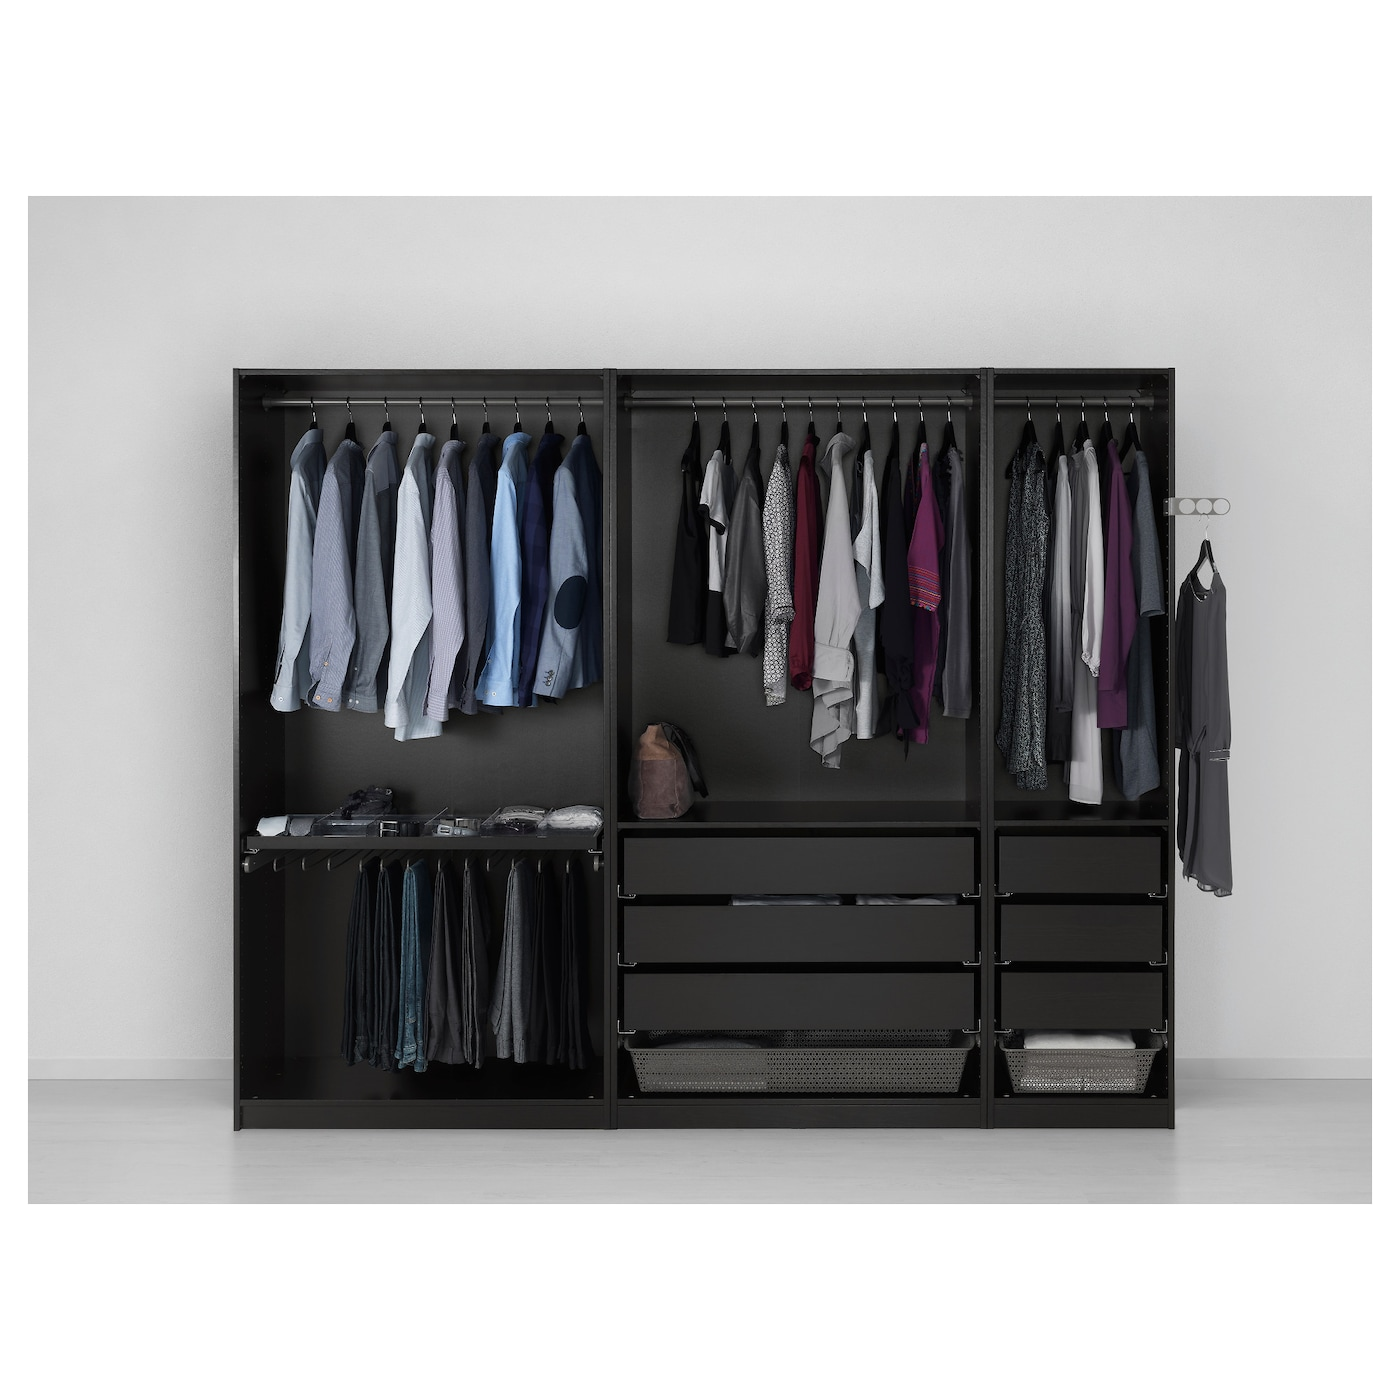 open wardrobe system with Pax Wardrobe Black Brown Undredal Black Spr 49127432 on Stealthlock Keyless Cabi  Locking System Sl 100 moreover Pax Wardrobe Black Brown Undredal Black Spr 49127432 likewise Product product id 194 together with Open Closed Laced Mens Dress Shoes as well Aluminium Bi Fold Doors.